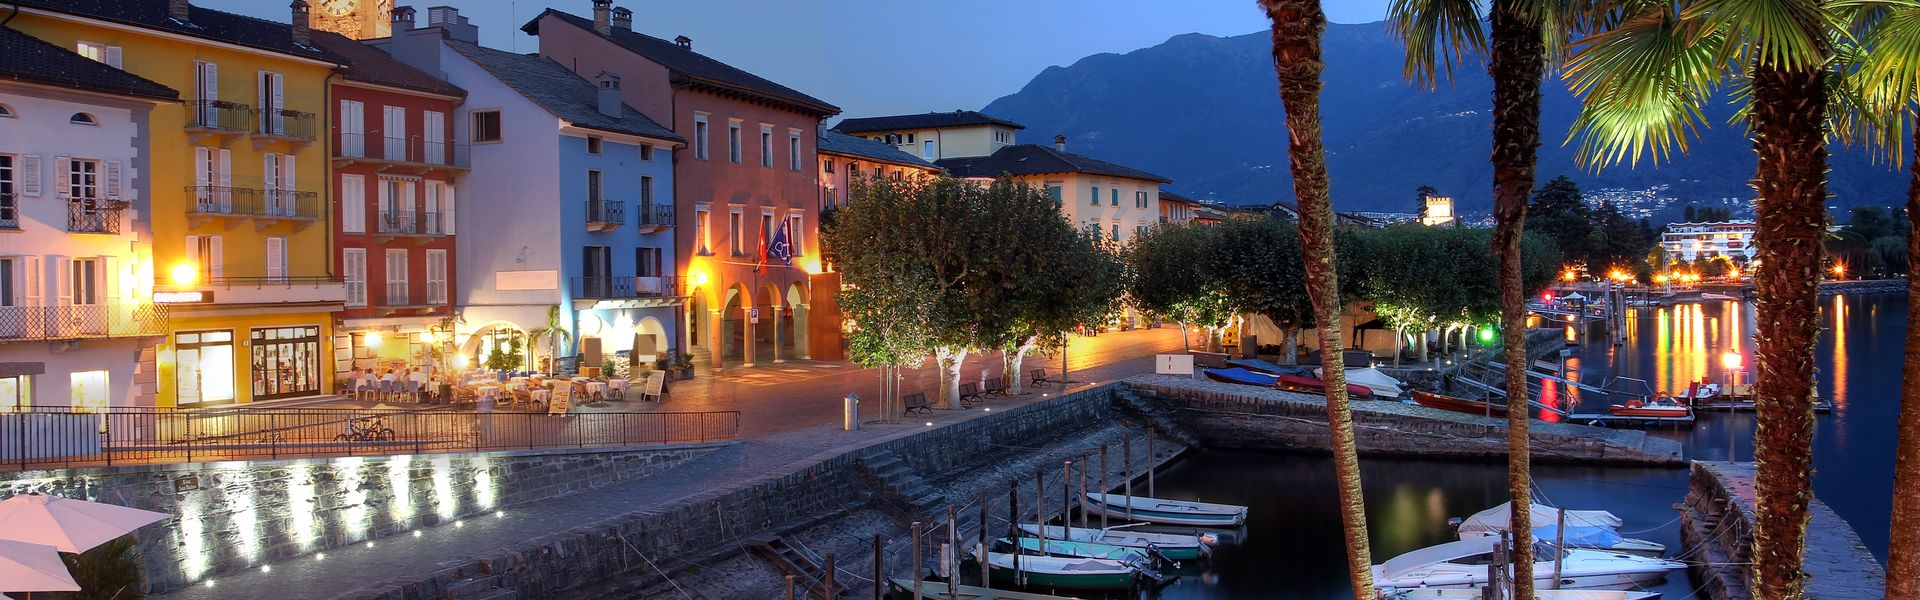 Last-minute camping holidays on Lake Maggiore